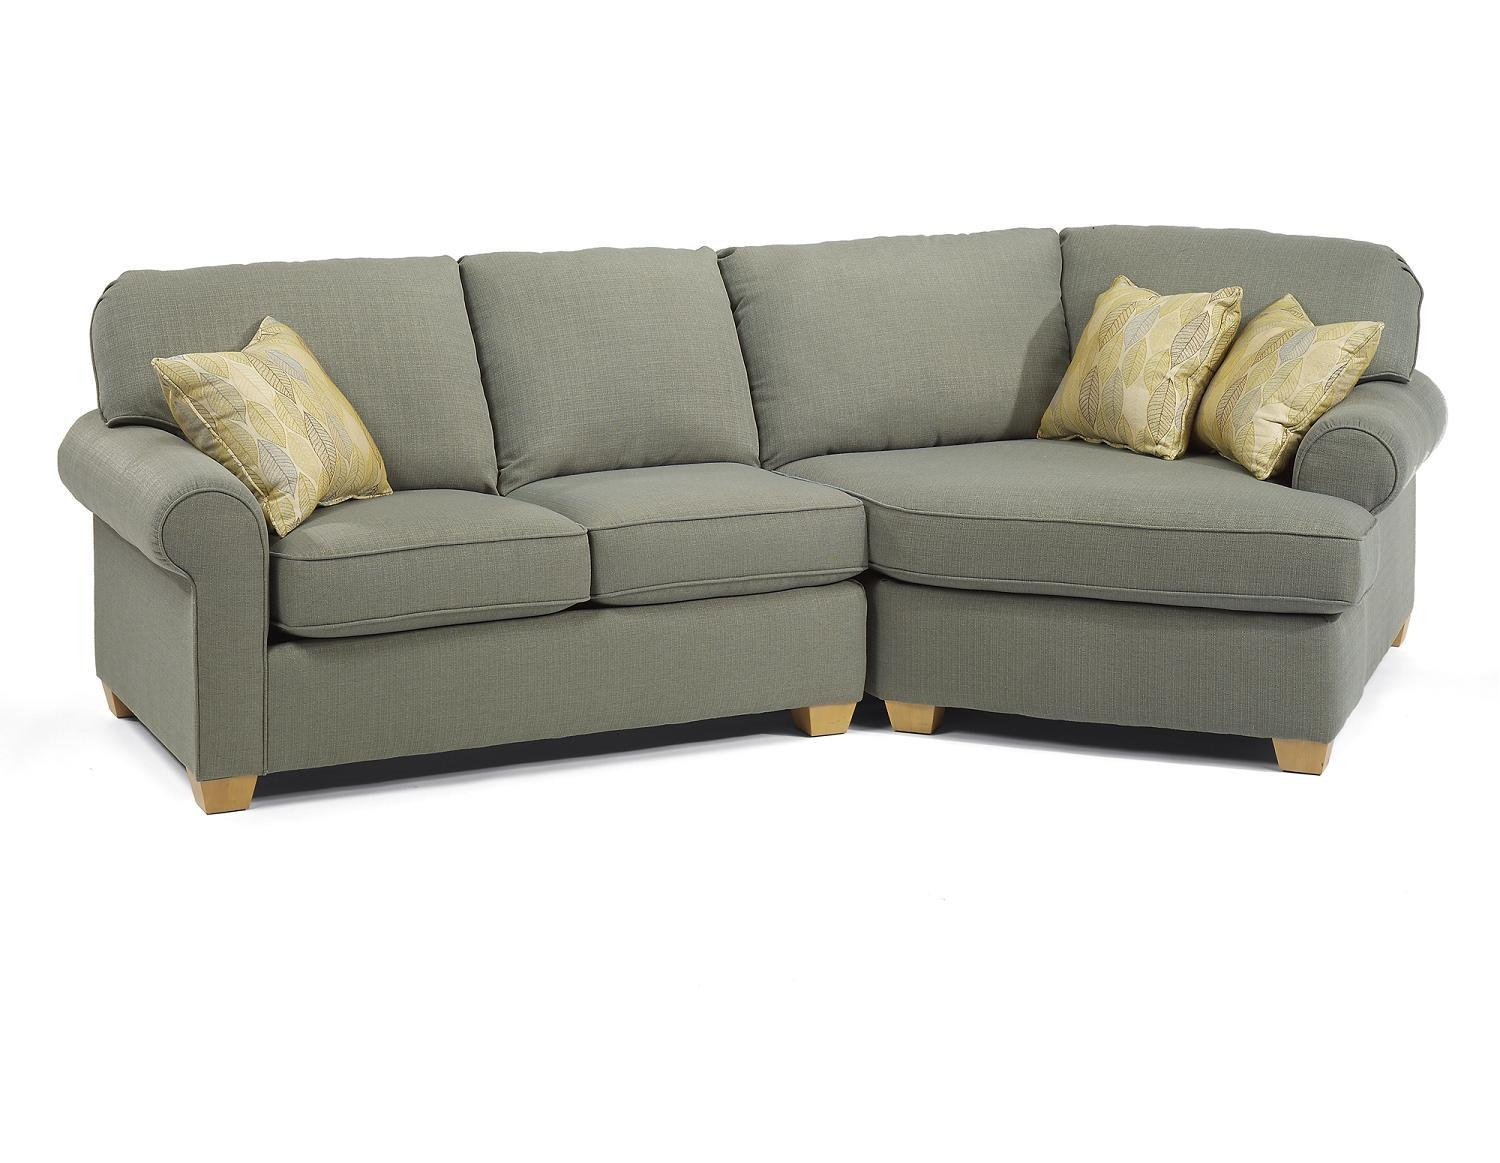 Sectional Sofa Chaise Lounge